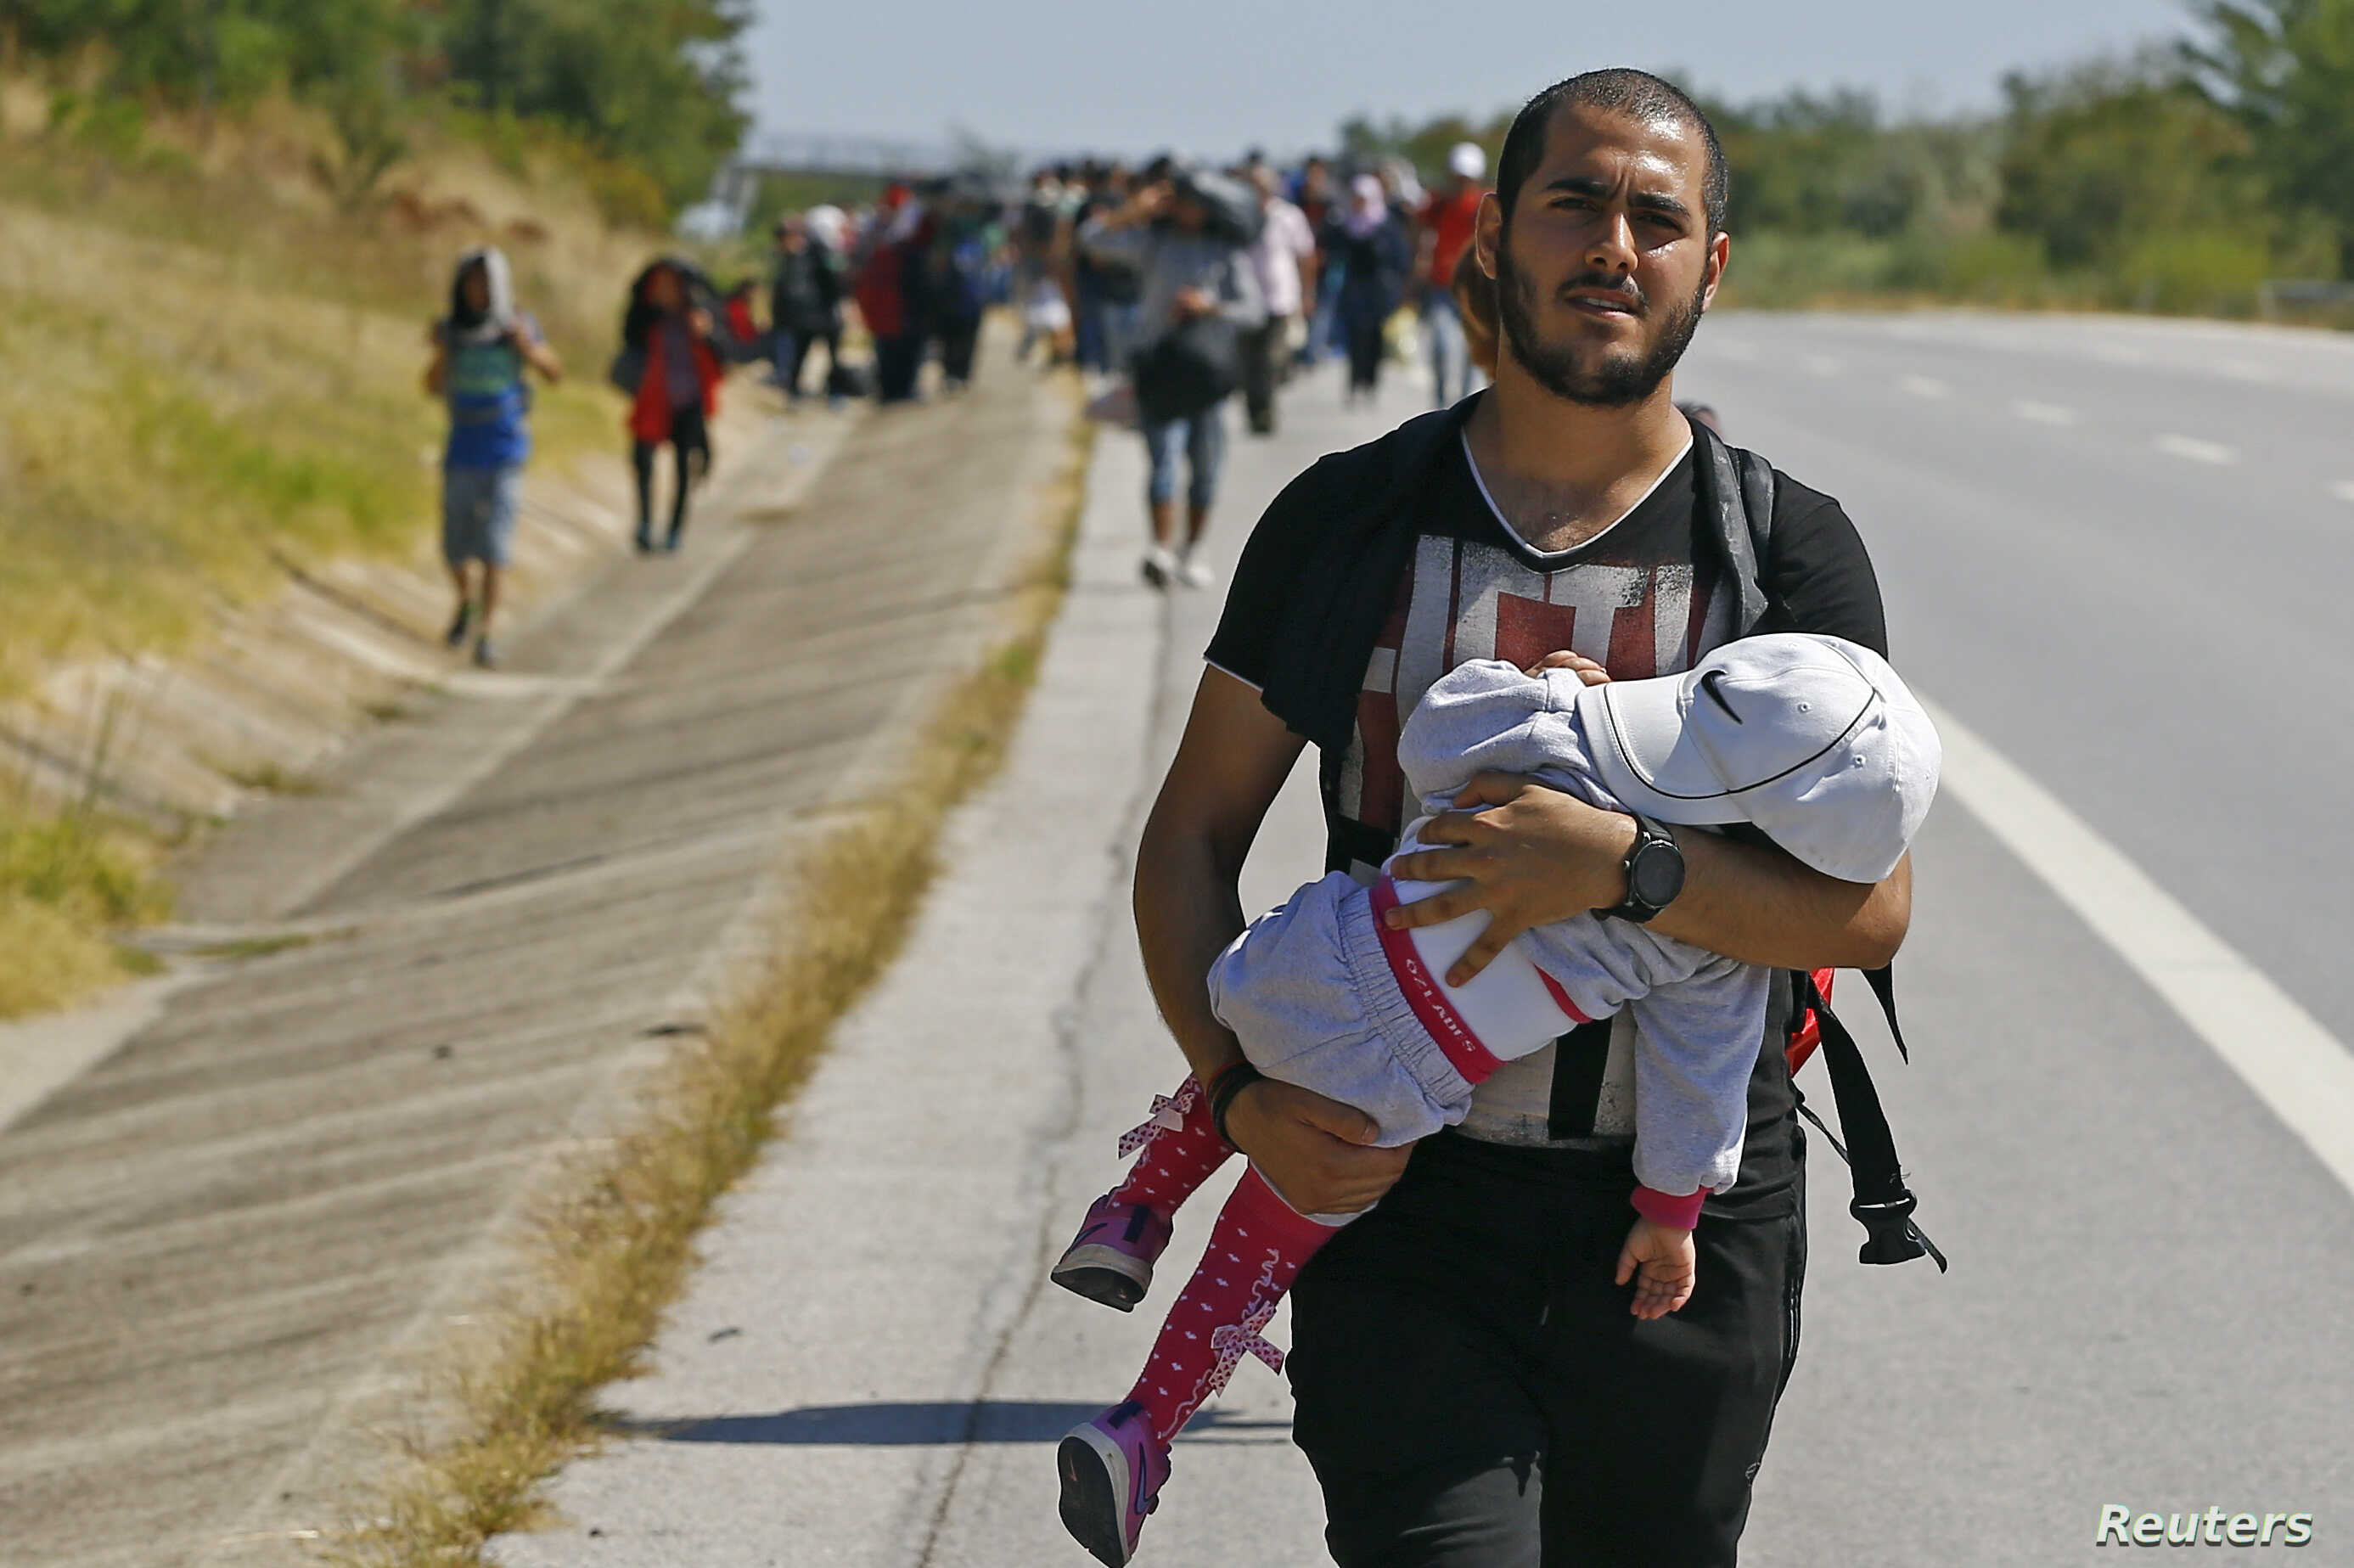 A Syrian migrant carries a baby as he walks towards the Greece border on a road near Edirne, Turkey, Sept. 15, 2015.